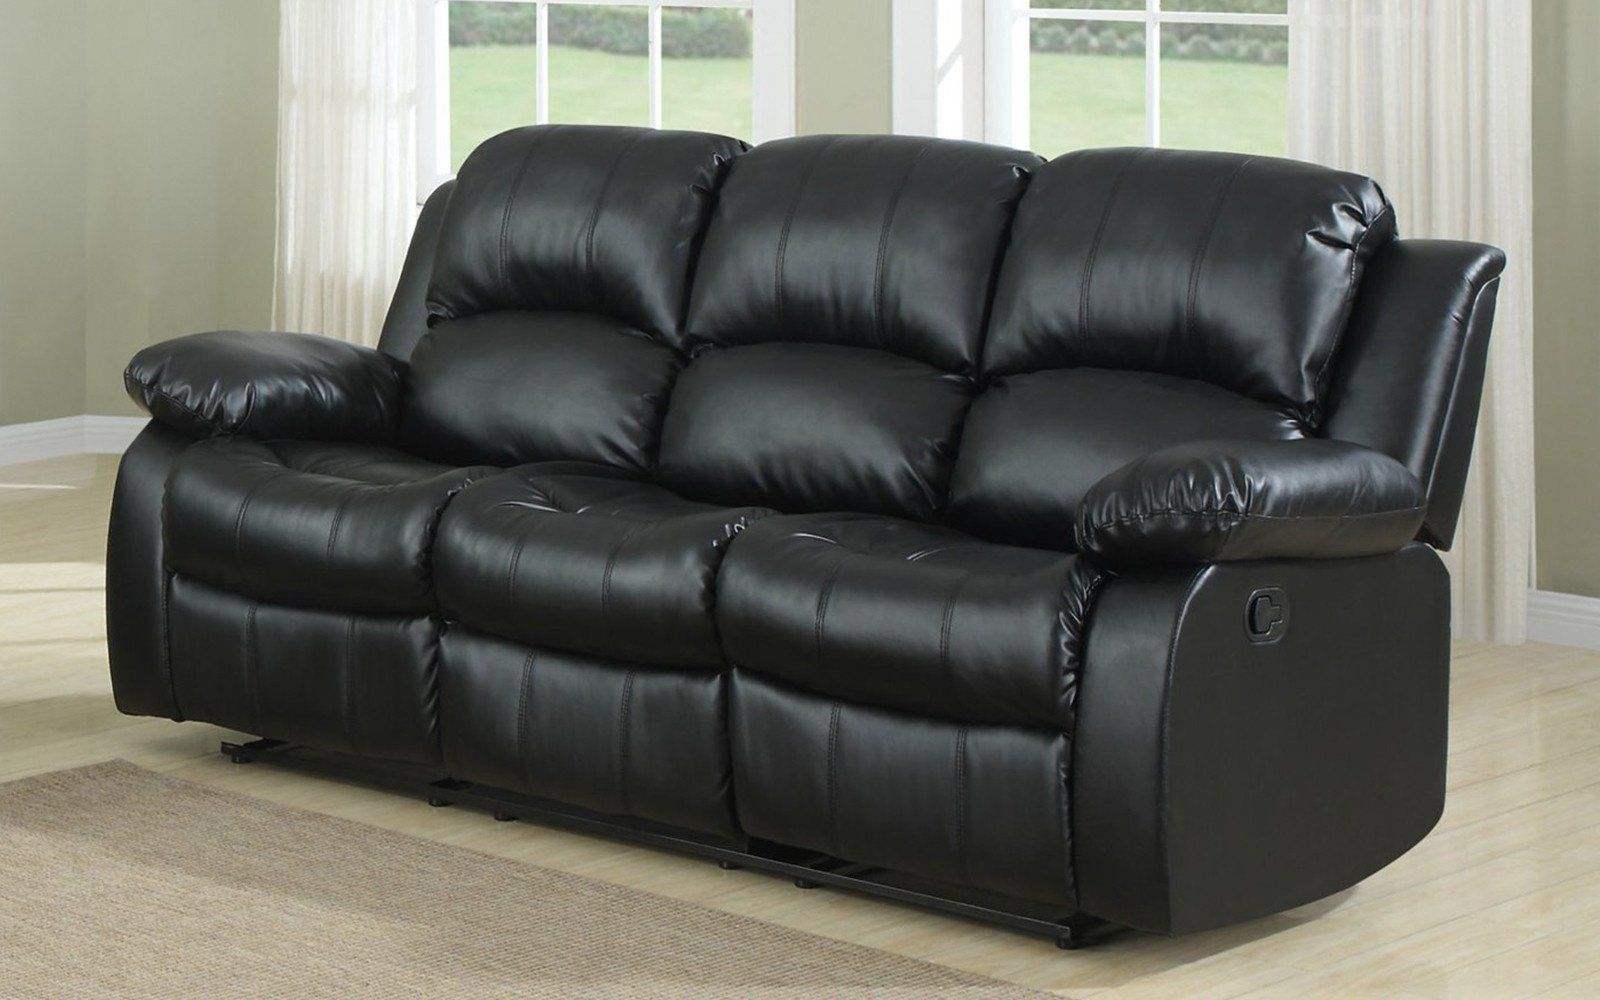 Reclining Leather Sofas Harveys 3 Seater Recliner Sofa Bob Classic Bonded Products Pinterest